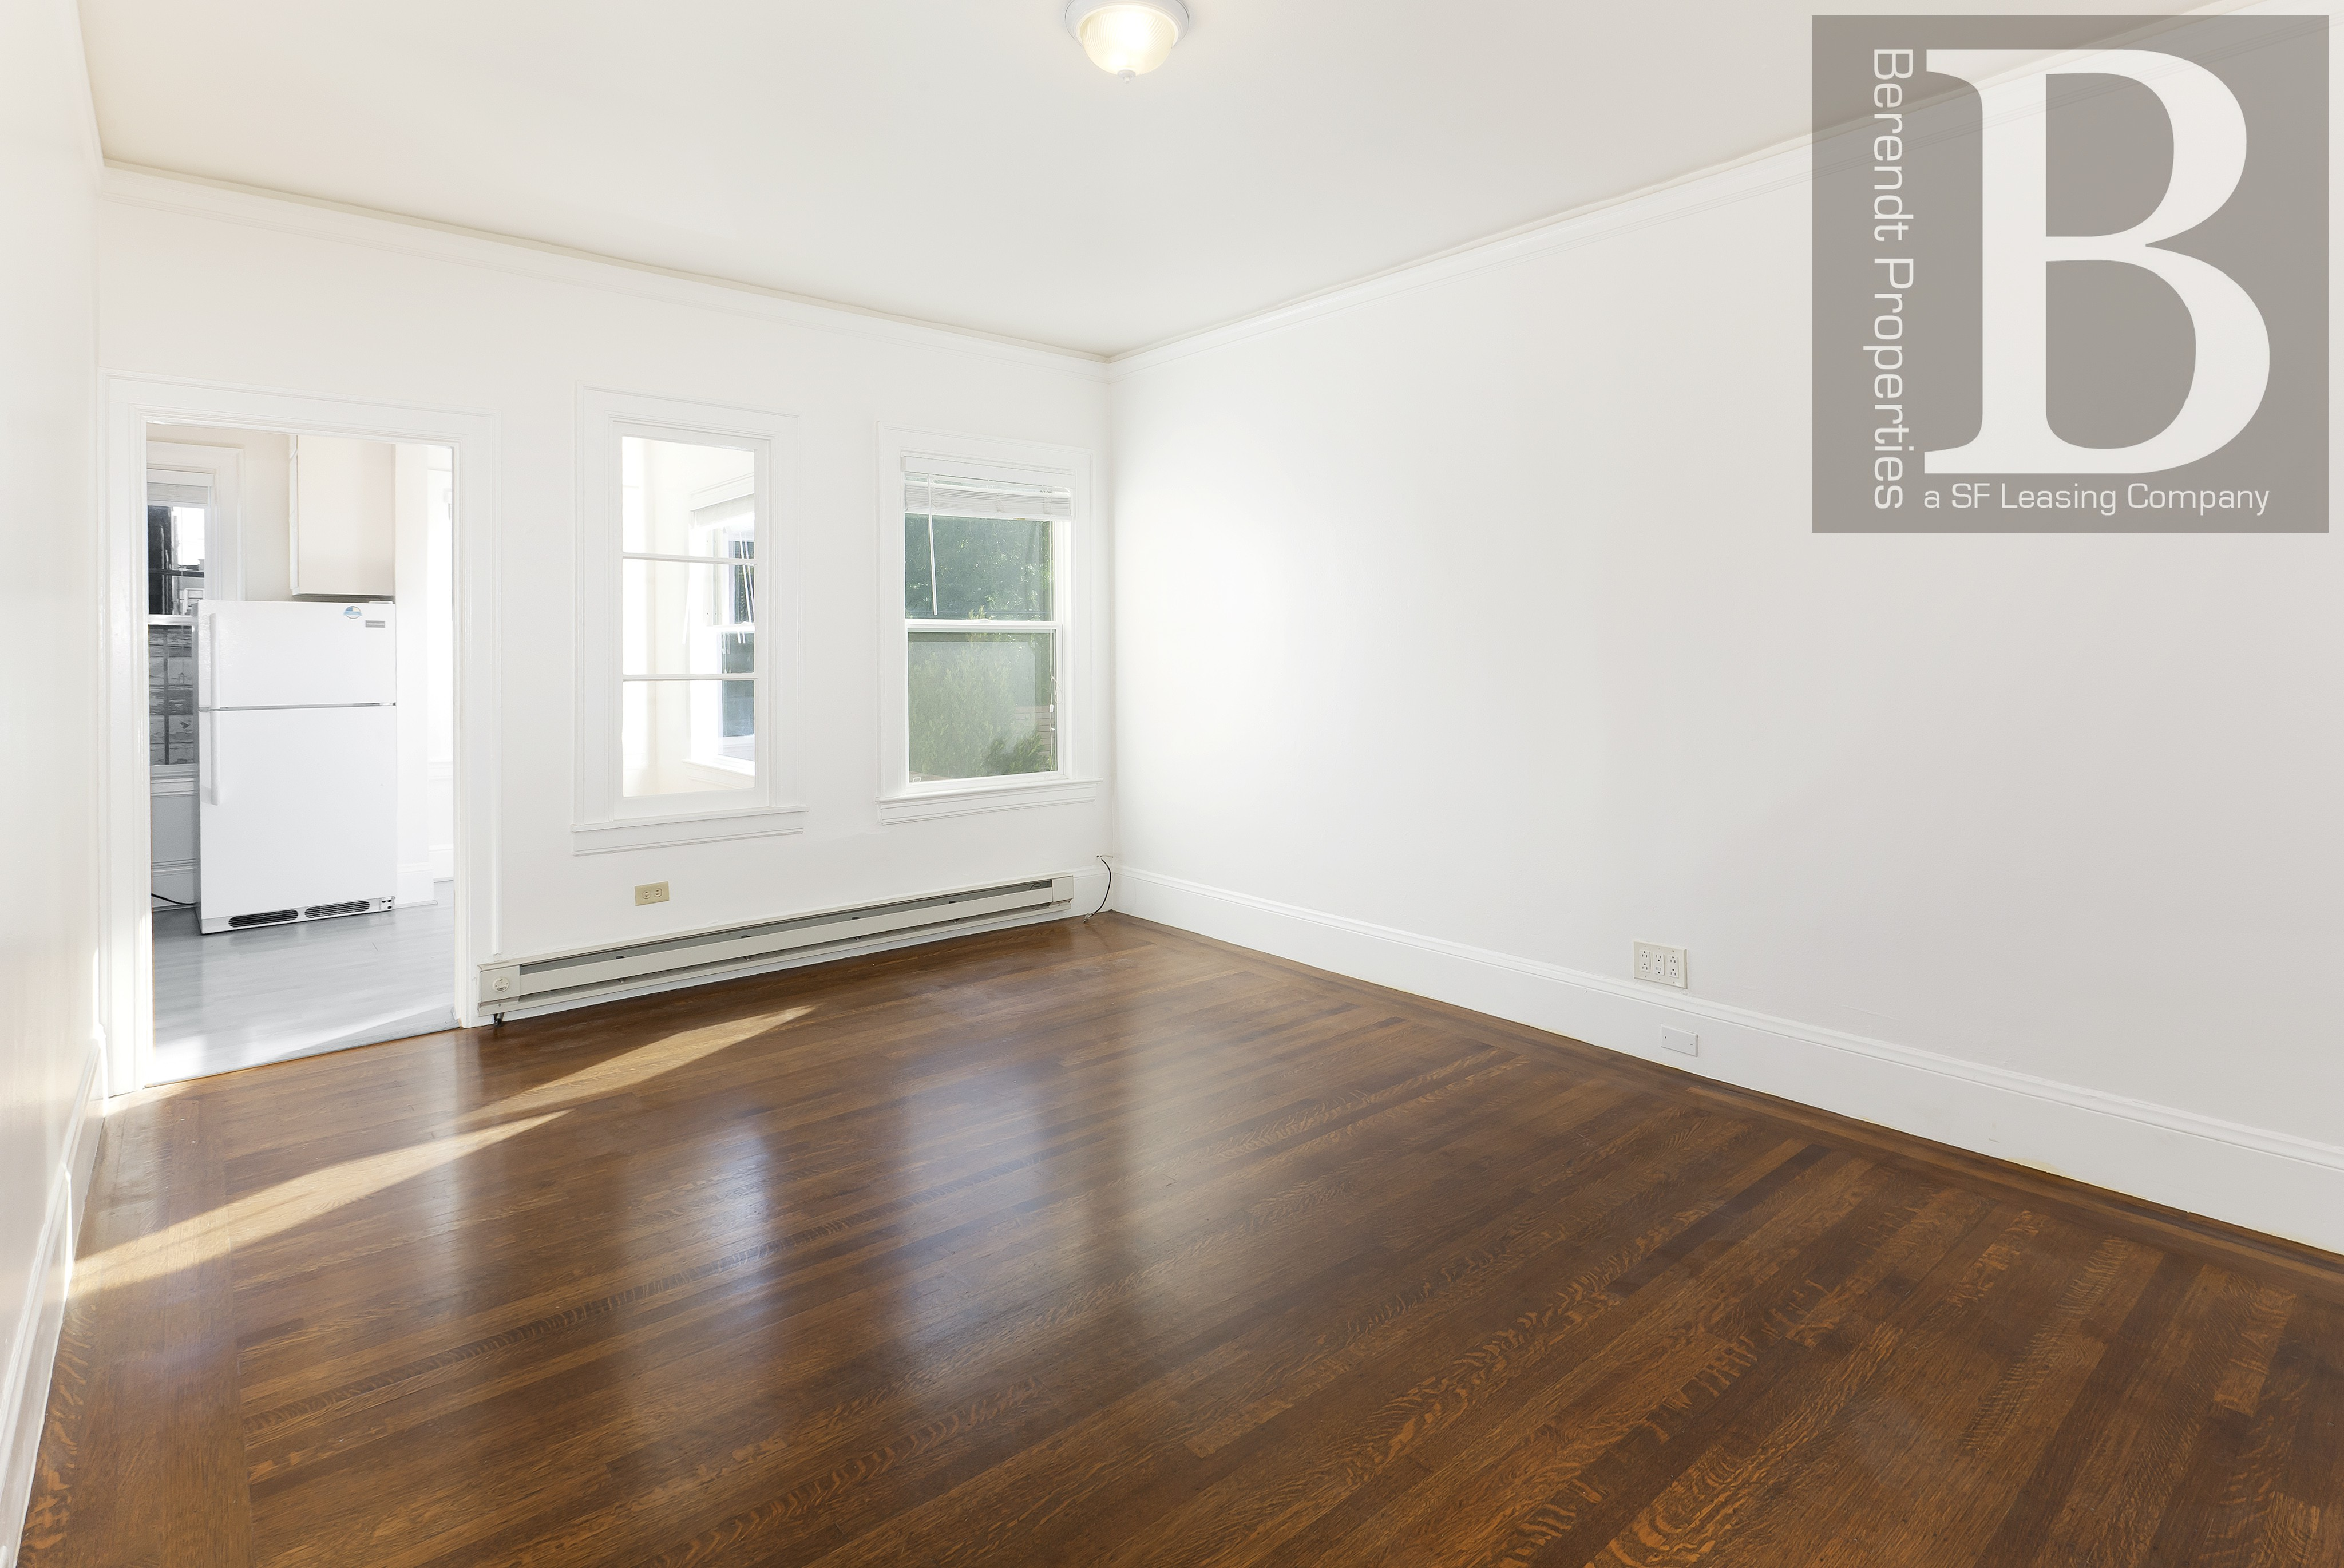 no ktrdecor unique cheapest ny one affordable apartments fresh fee bedroom brooklyn in apartment